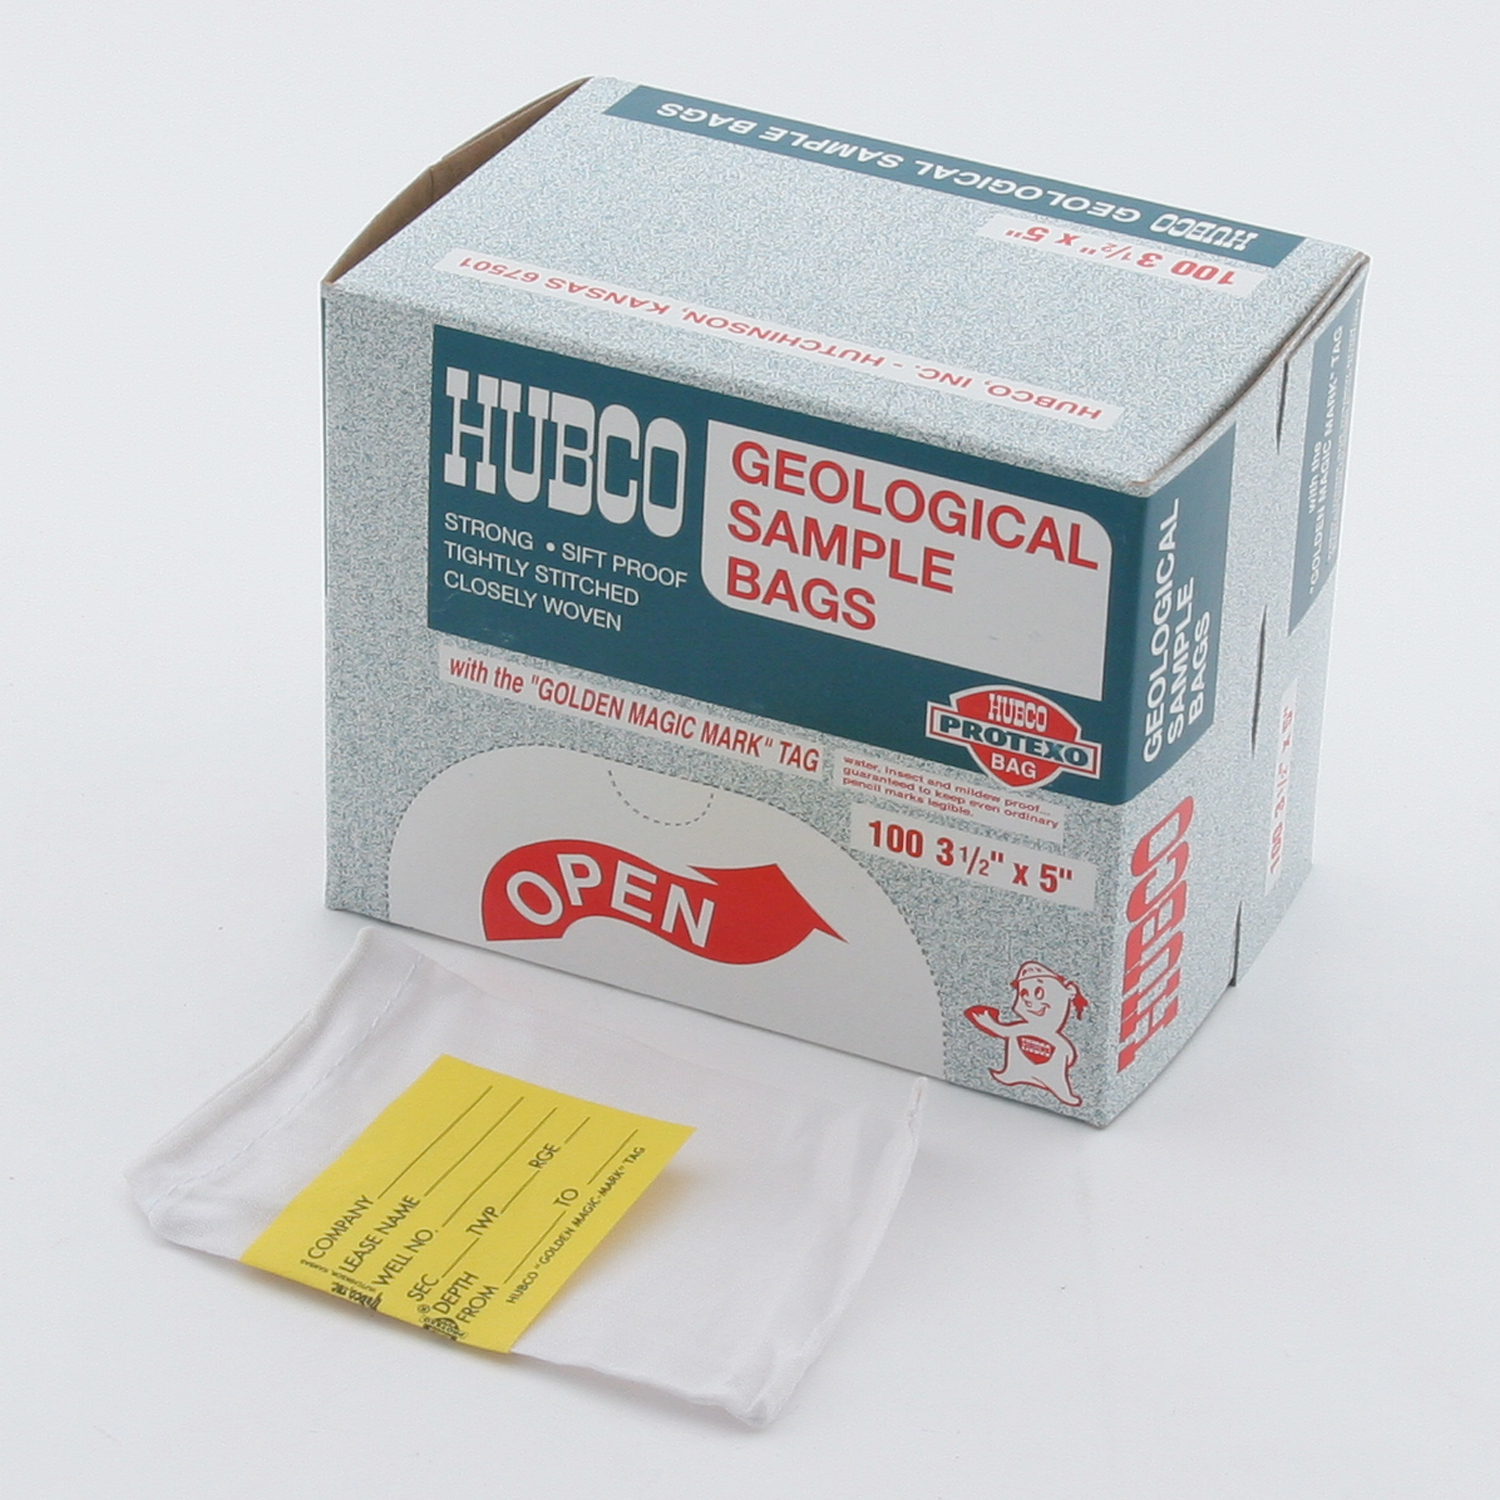 "Hubco cloth soil sample bags 3-1/2"" x 5"" box of 100 